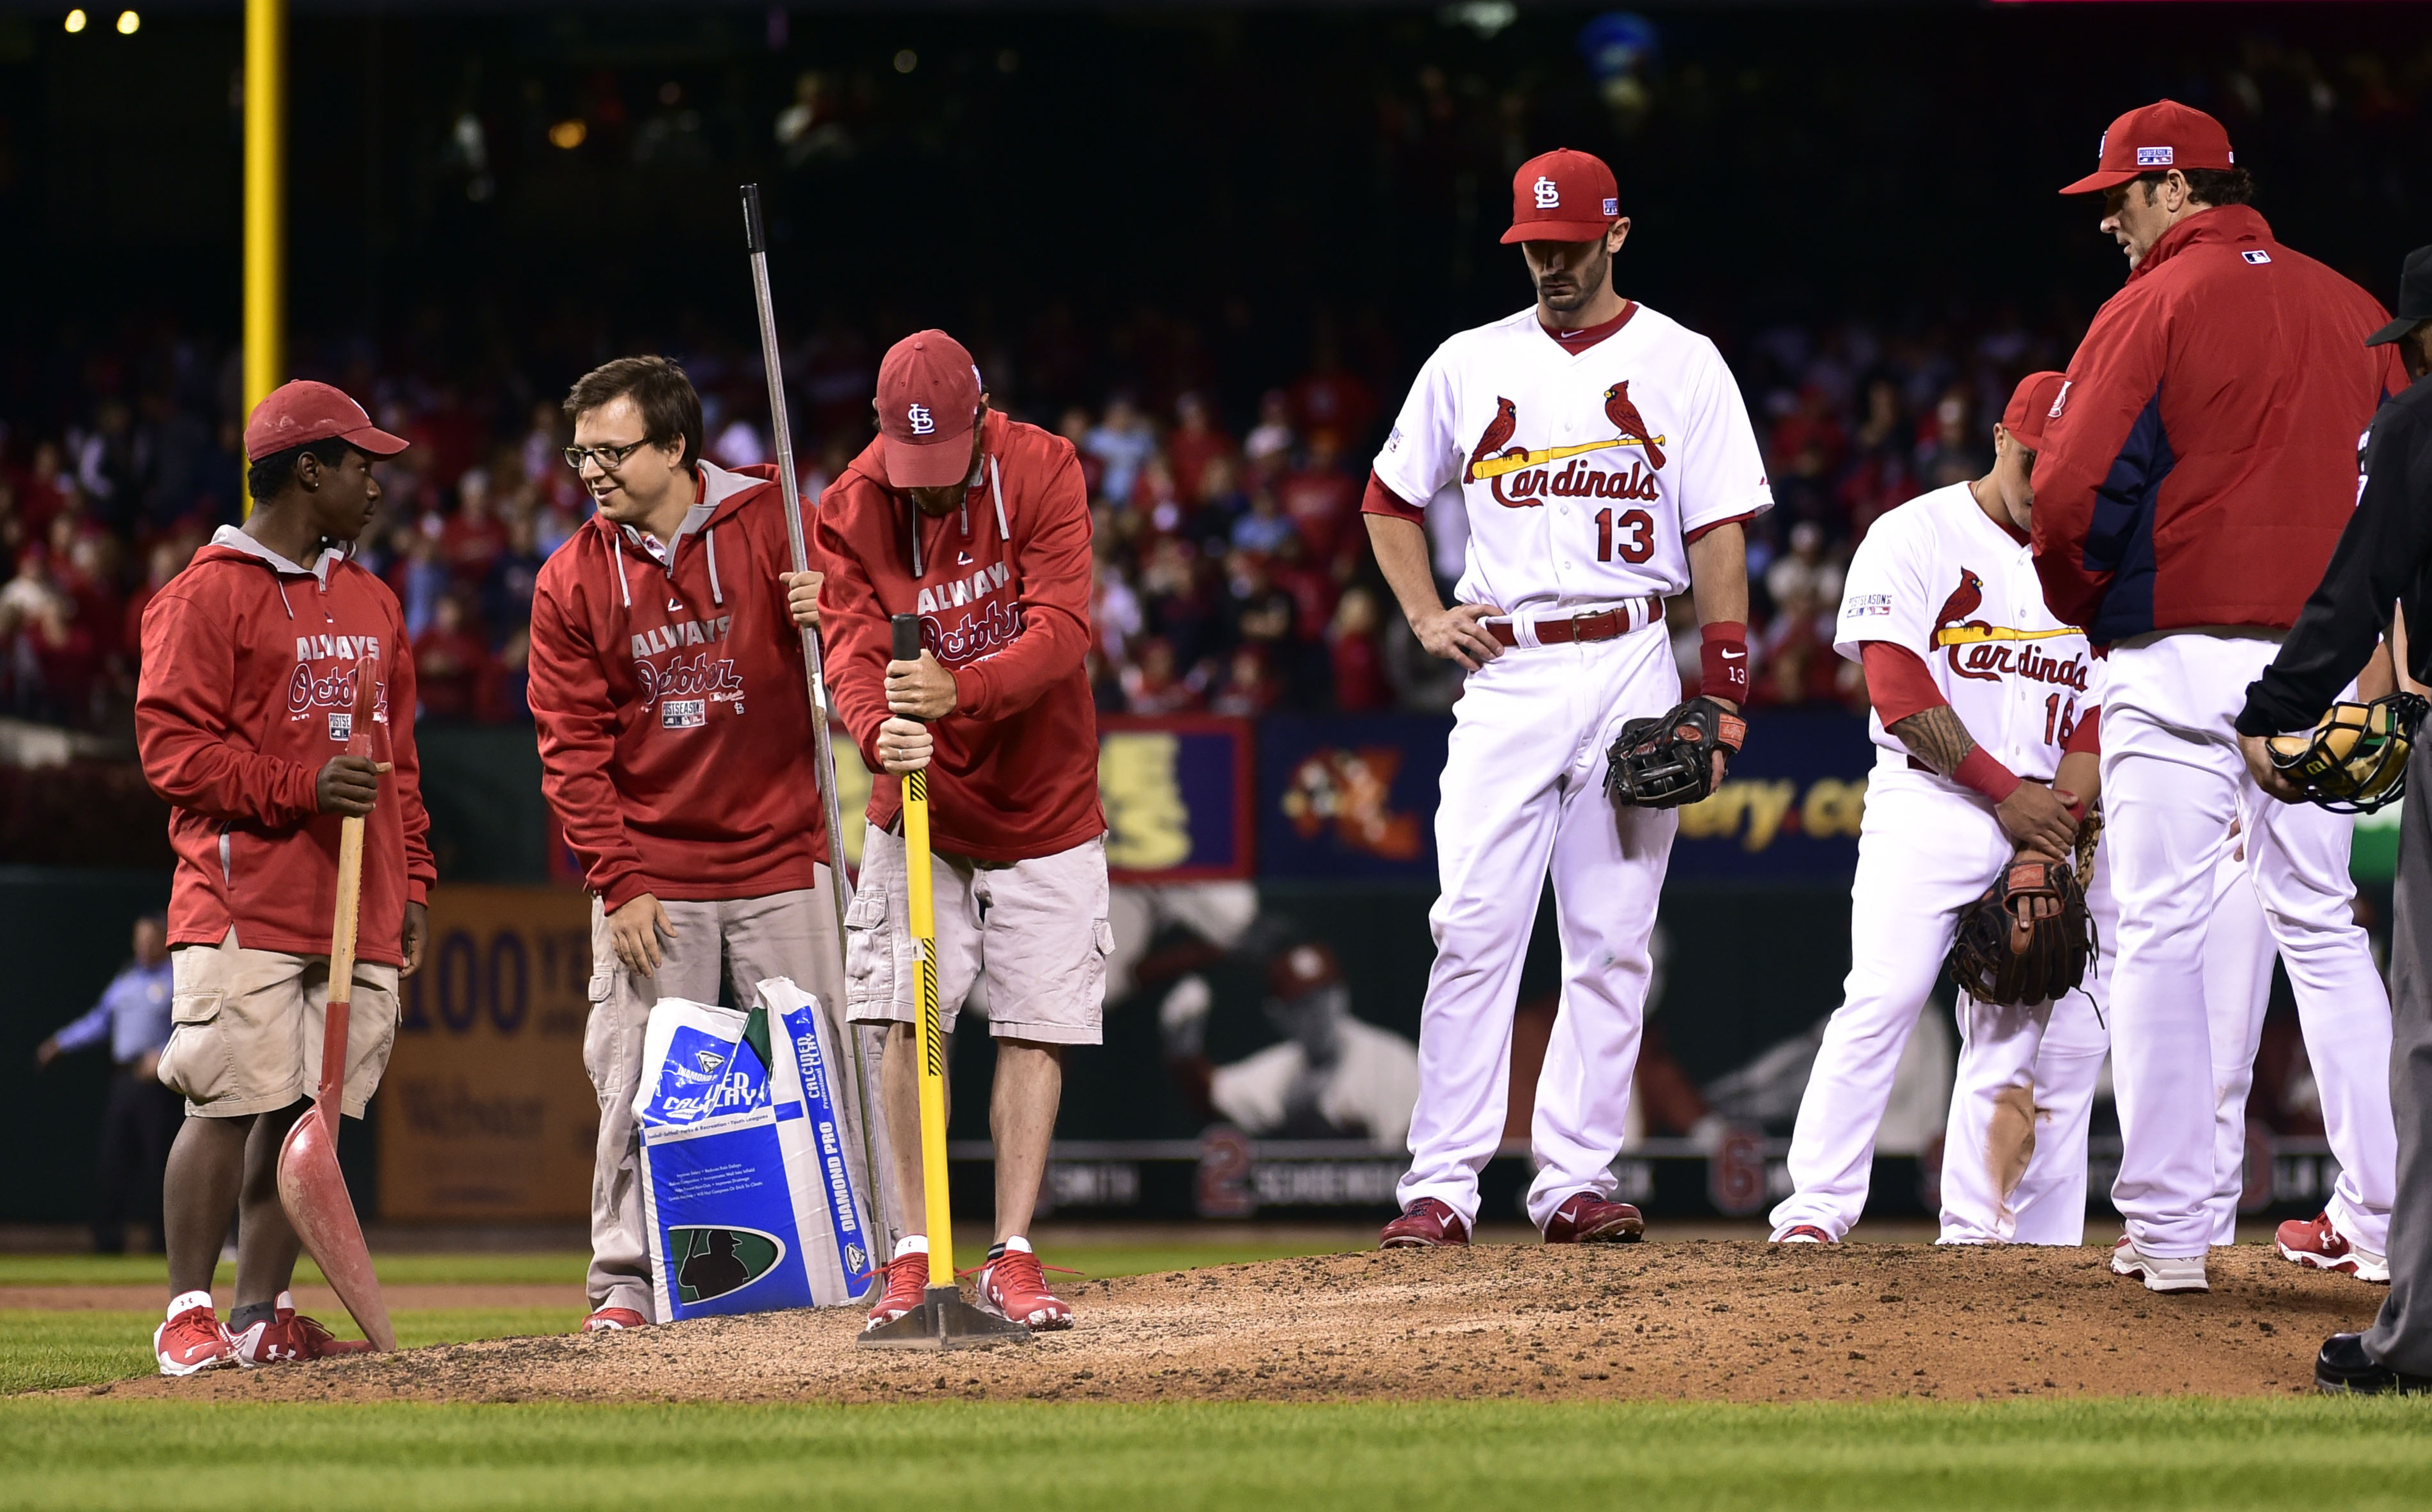 Matt Carpenter, coaches son, ensures the grounds crew is tamping that dirt correctly.